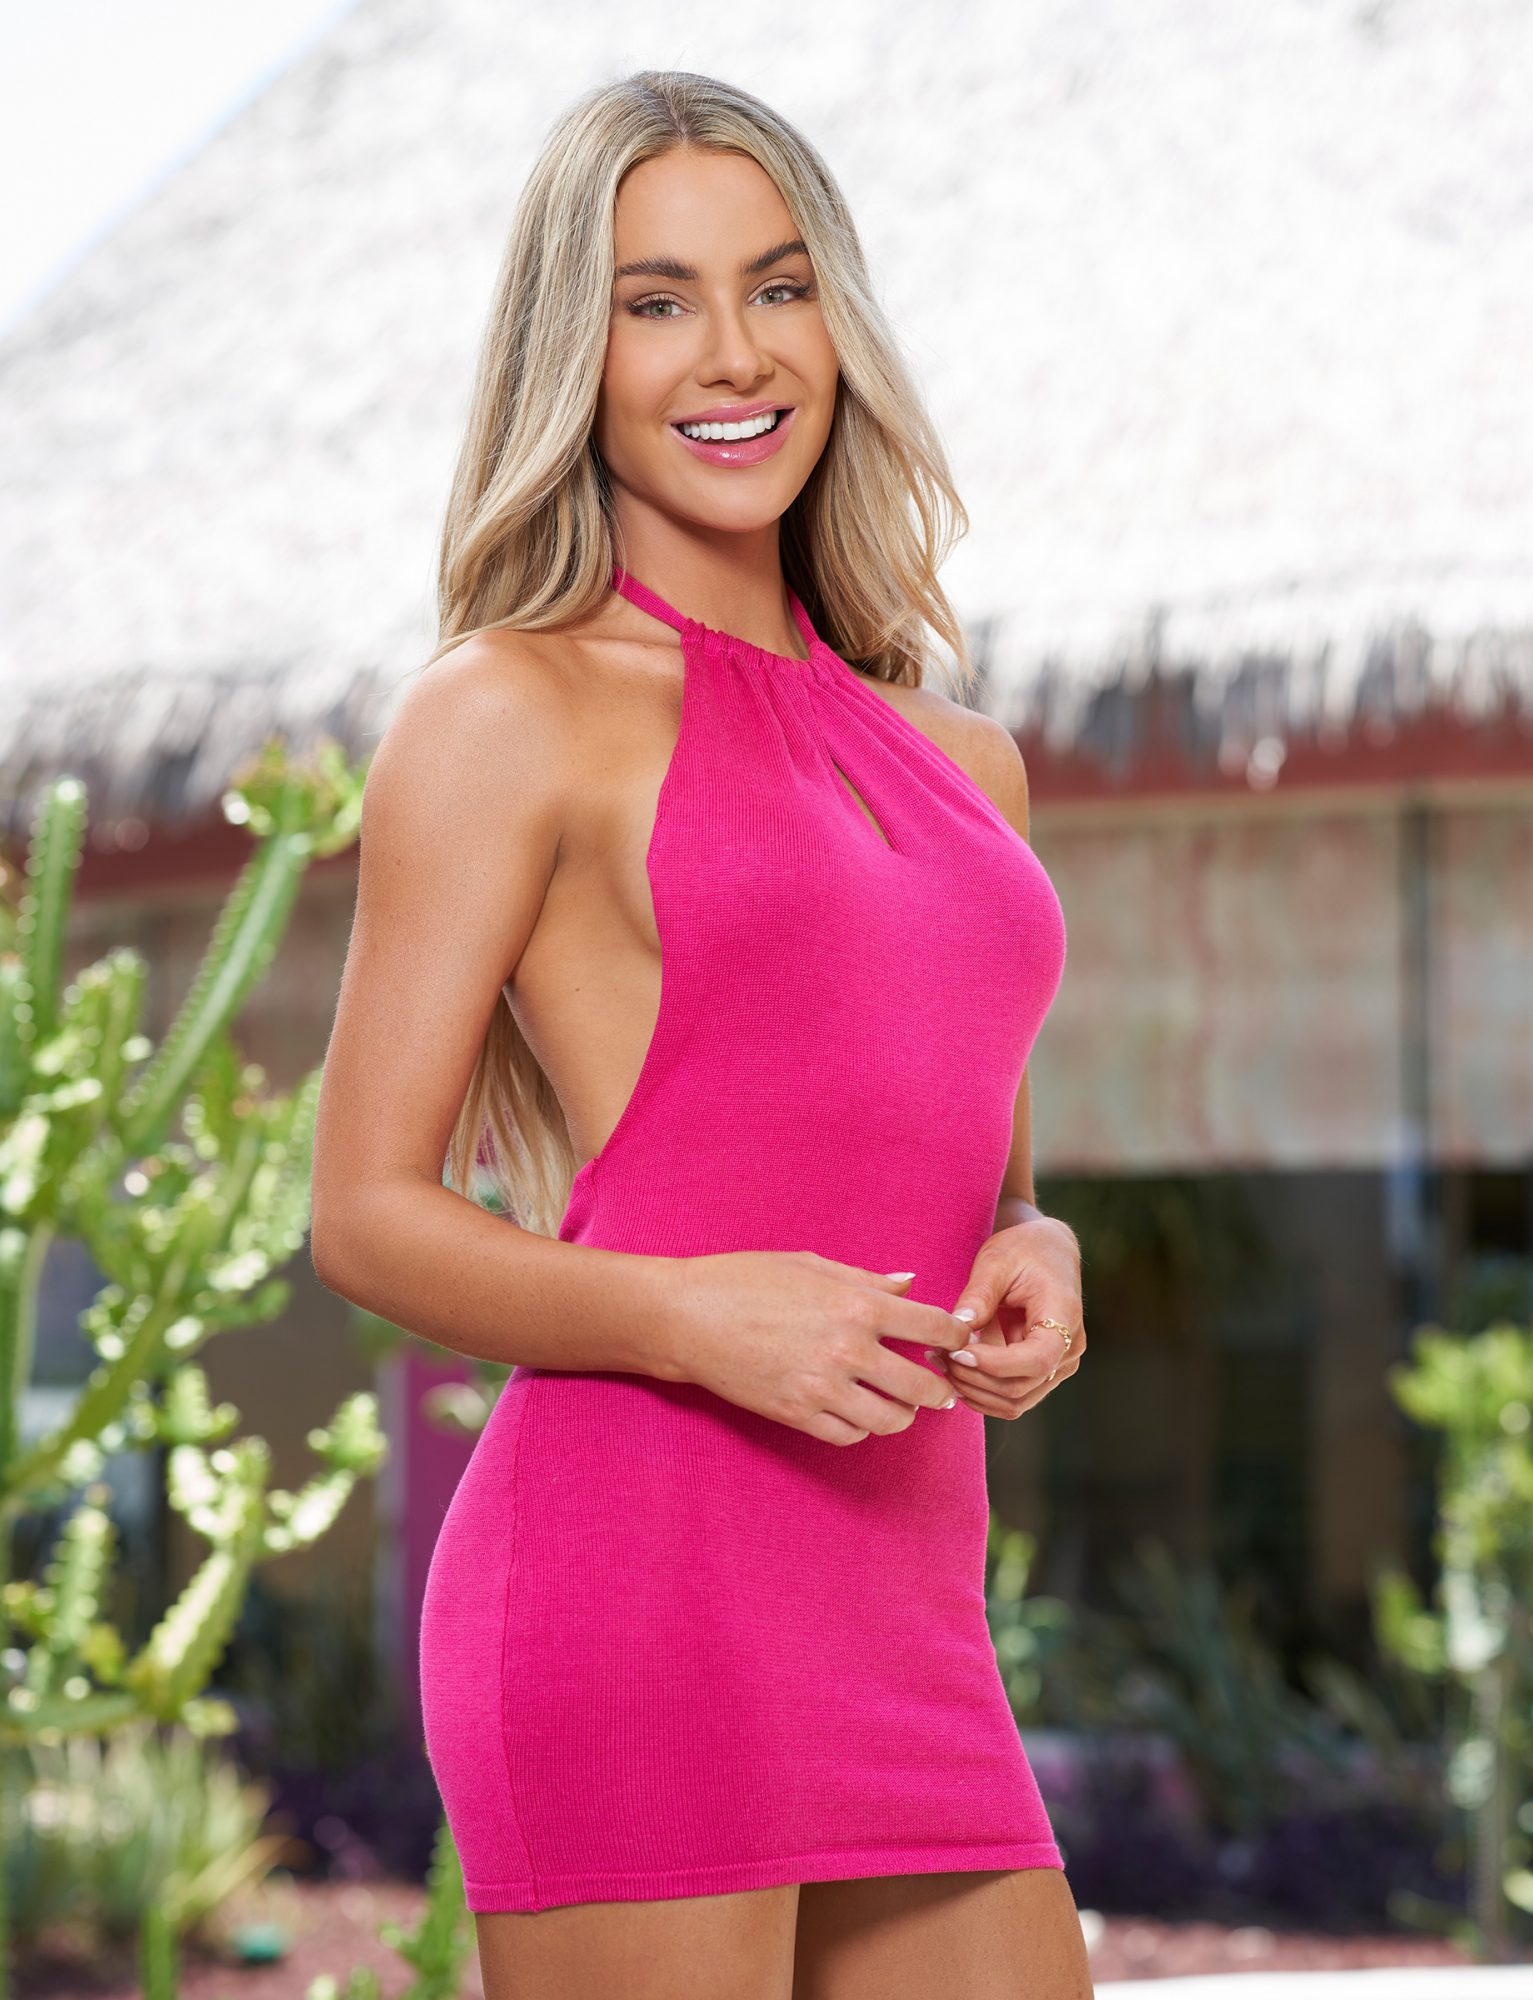 VICTORIA PAUL - Bachelor in Paradise